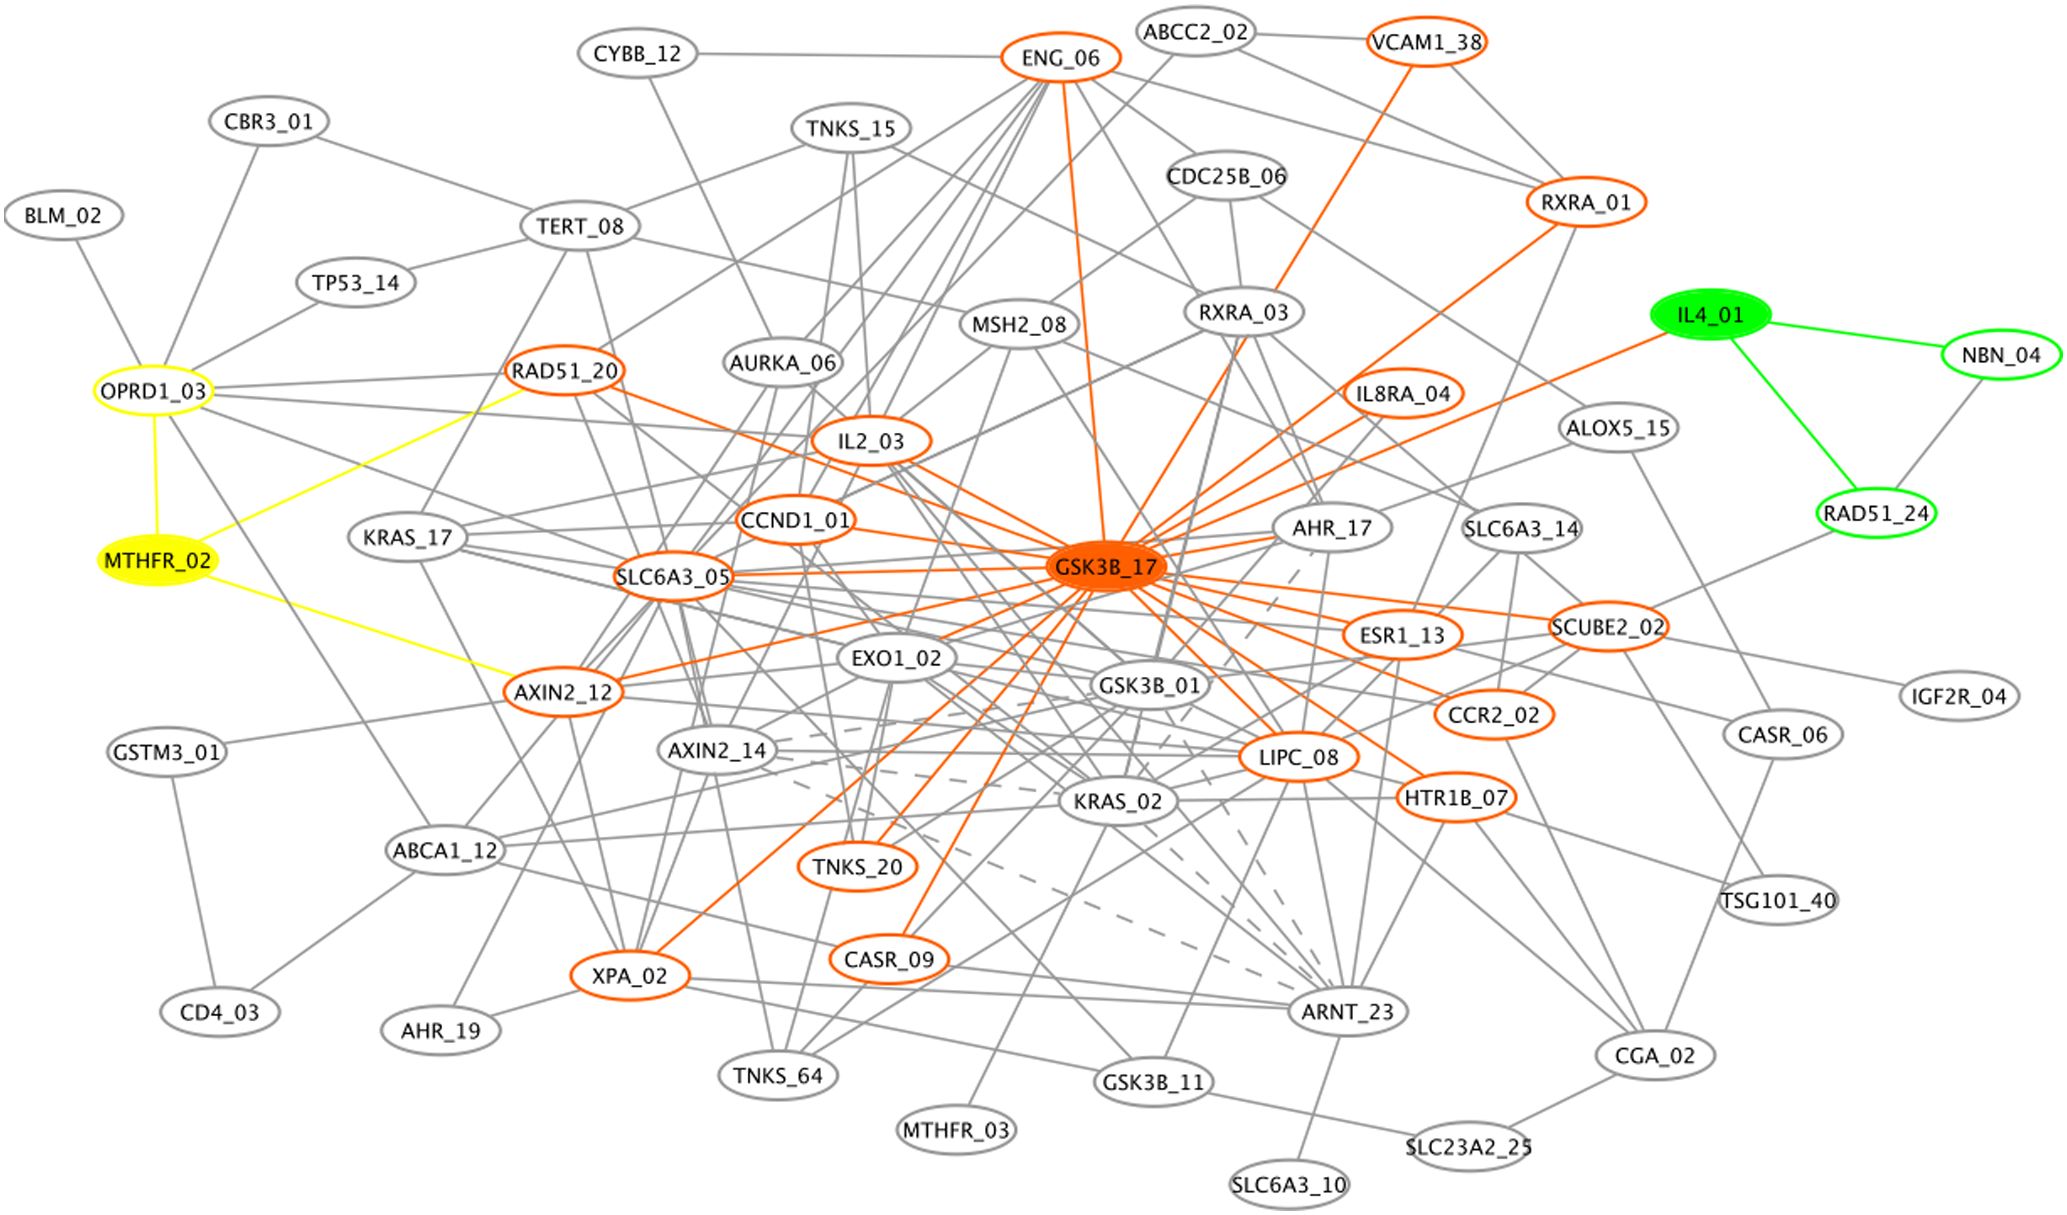 Genetic association interaction network (GAIN) for the top 70 SNPs selected by Evaporative Cooling (EC) as most relevant to smallpox vaccine-associated adverse events.